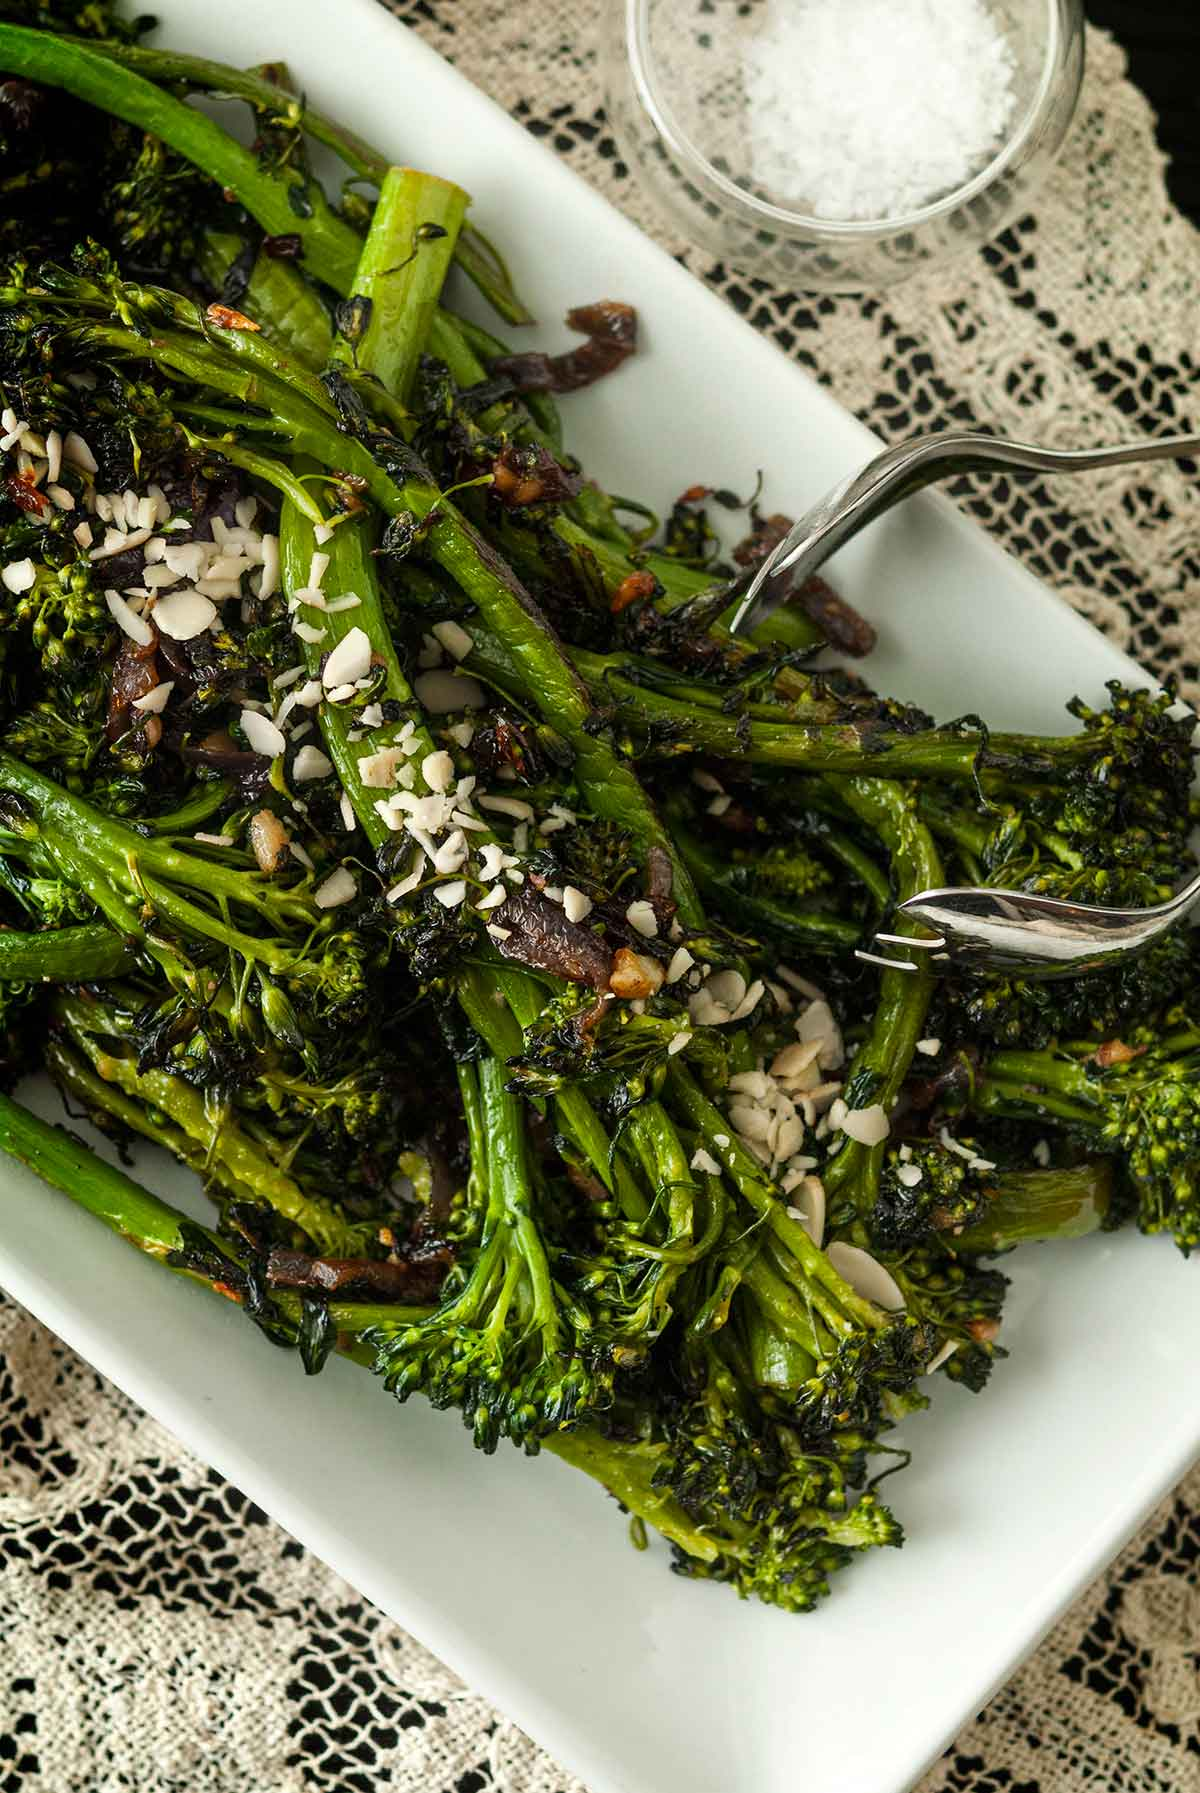 A plate of sautéed broccoli rabe on a lace tablecloth, beside a small bowl of salt, with salad tongs.